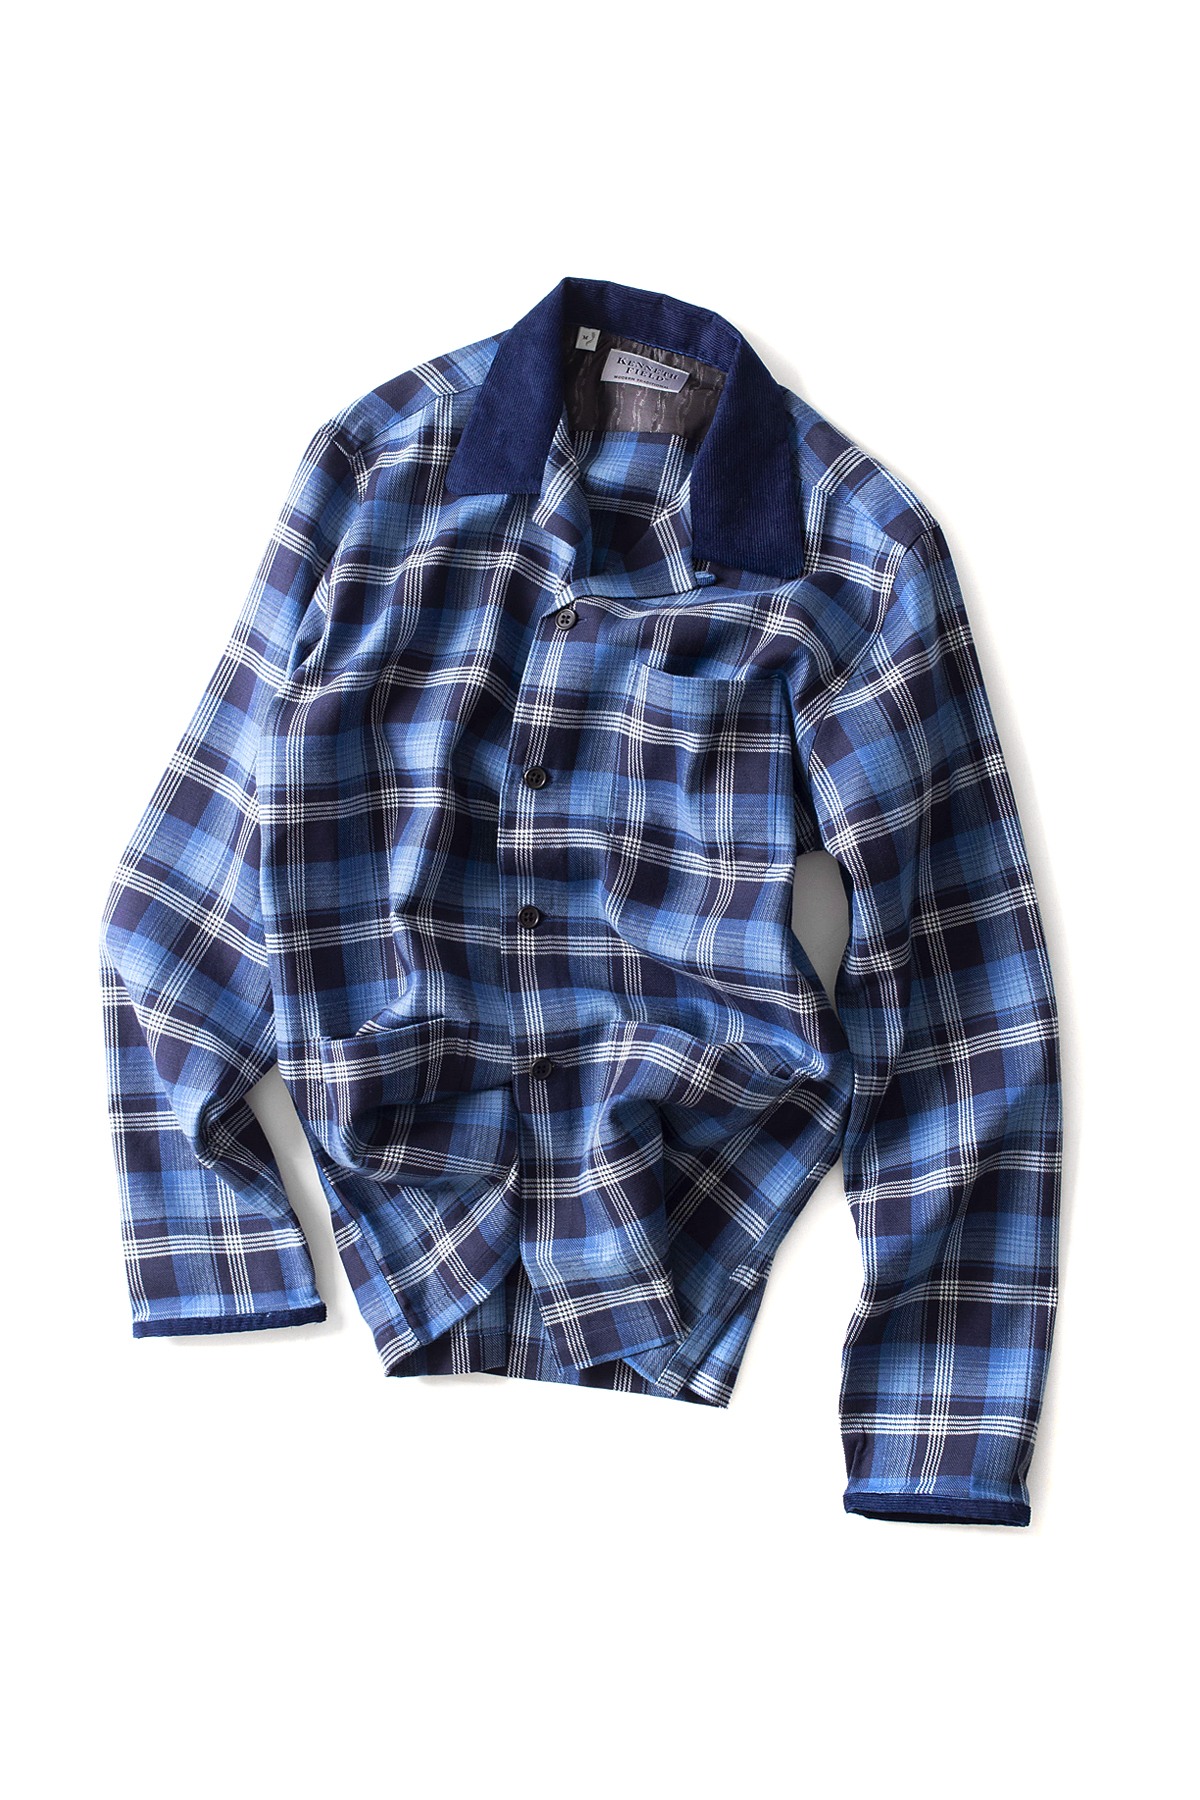 Kenneth Field : Ez-Jac Indigo Plaids (Navy)